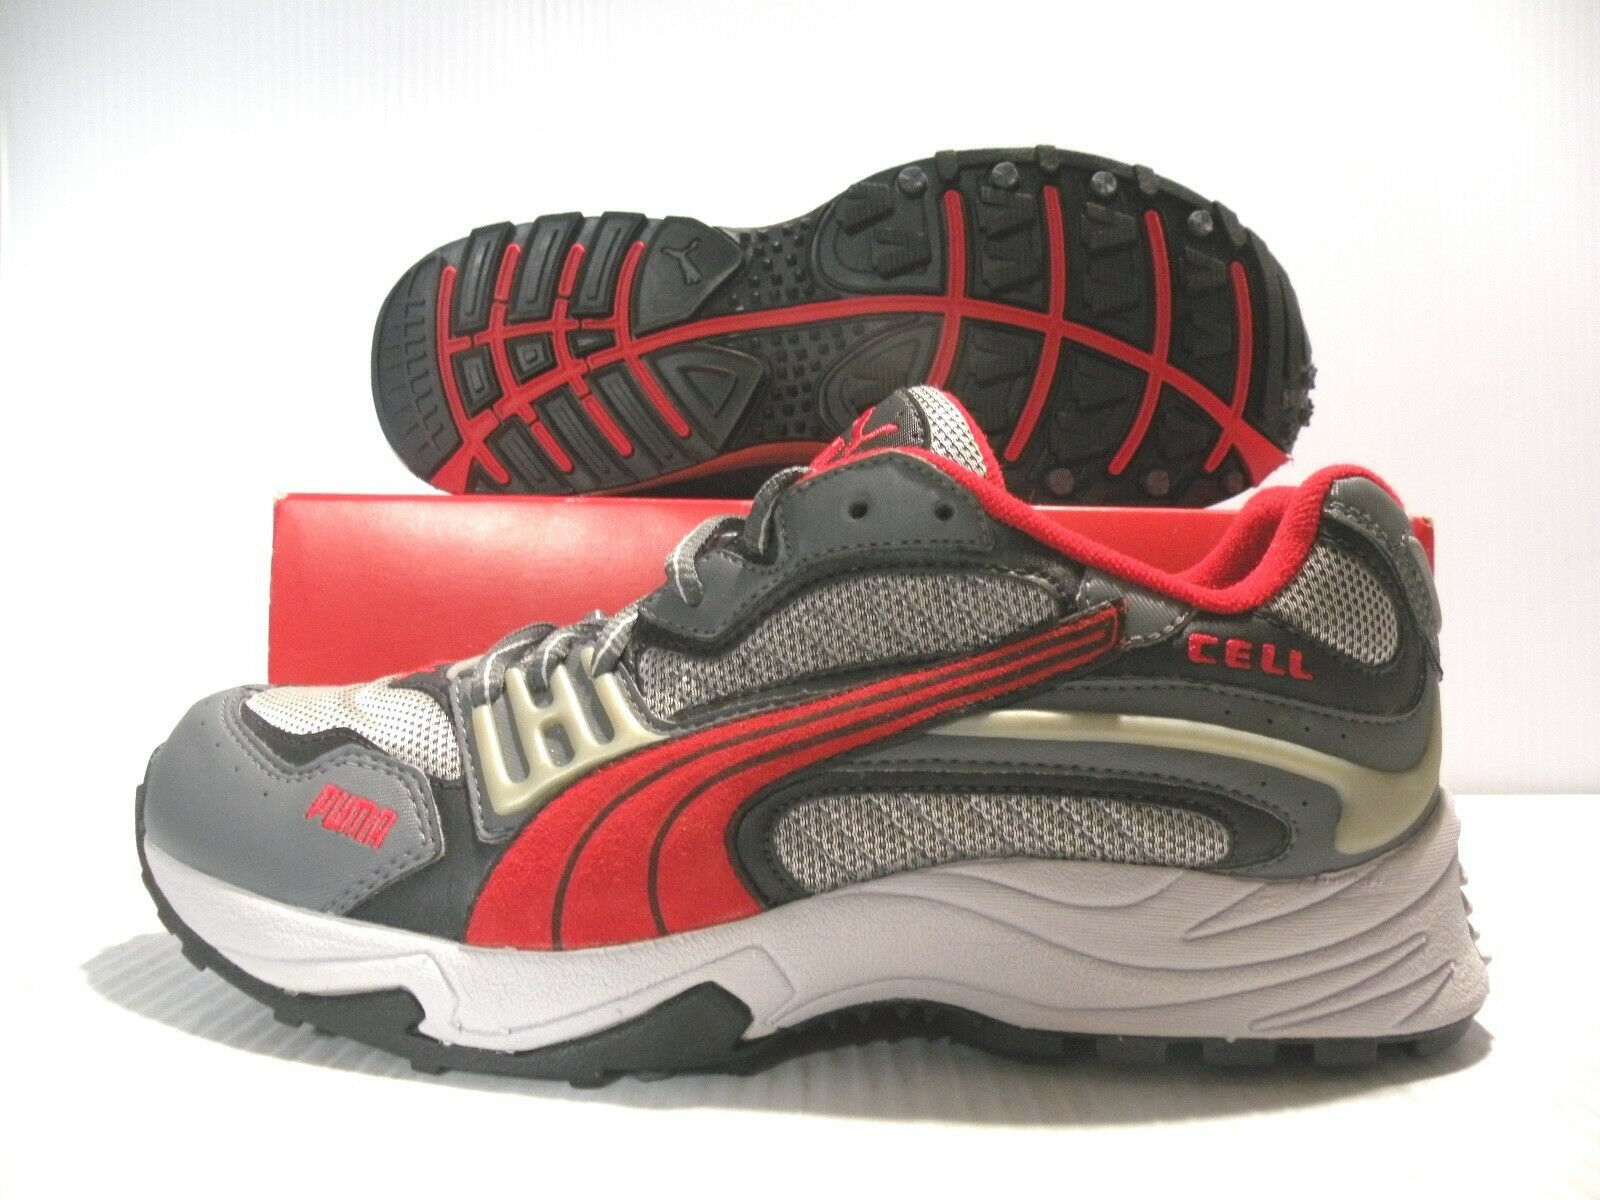 PUMA XC EXT CELL LOW SNEAKERS VINTAGE uomo SHOES GRAY/RED 181193-02 SIZE 6 NEW Scarpe classiche da uomo